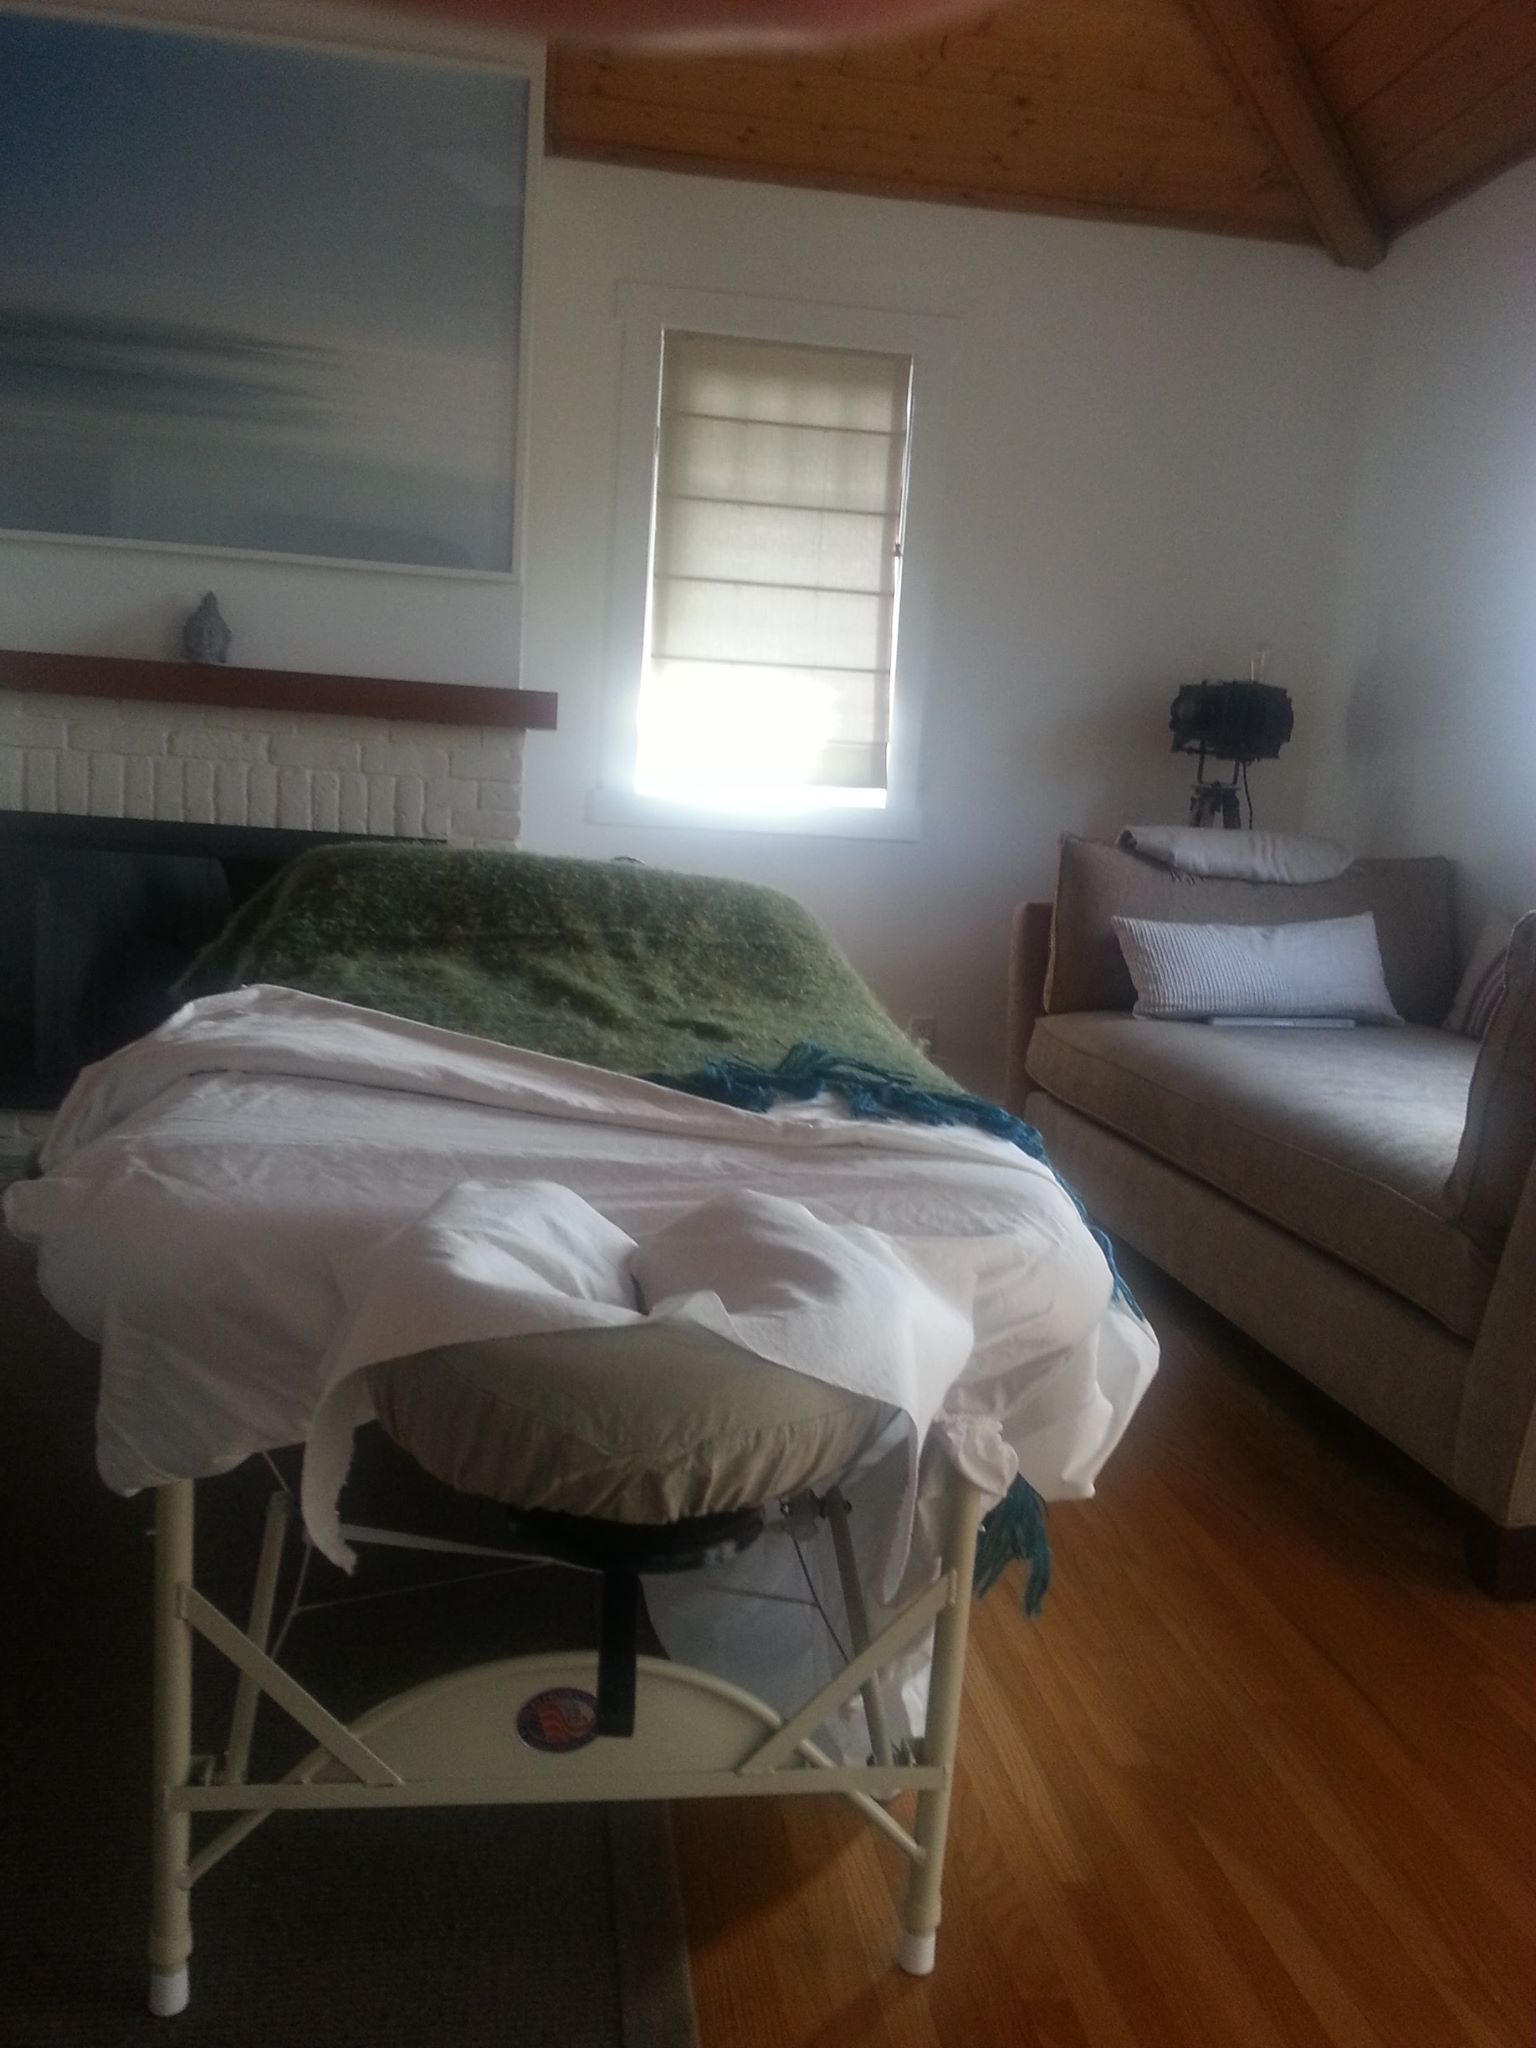 Natural light provides a nice ambiance for this mobile massage set-up at the home of a regular client in Venice.